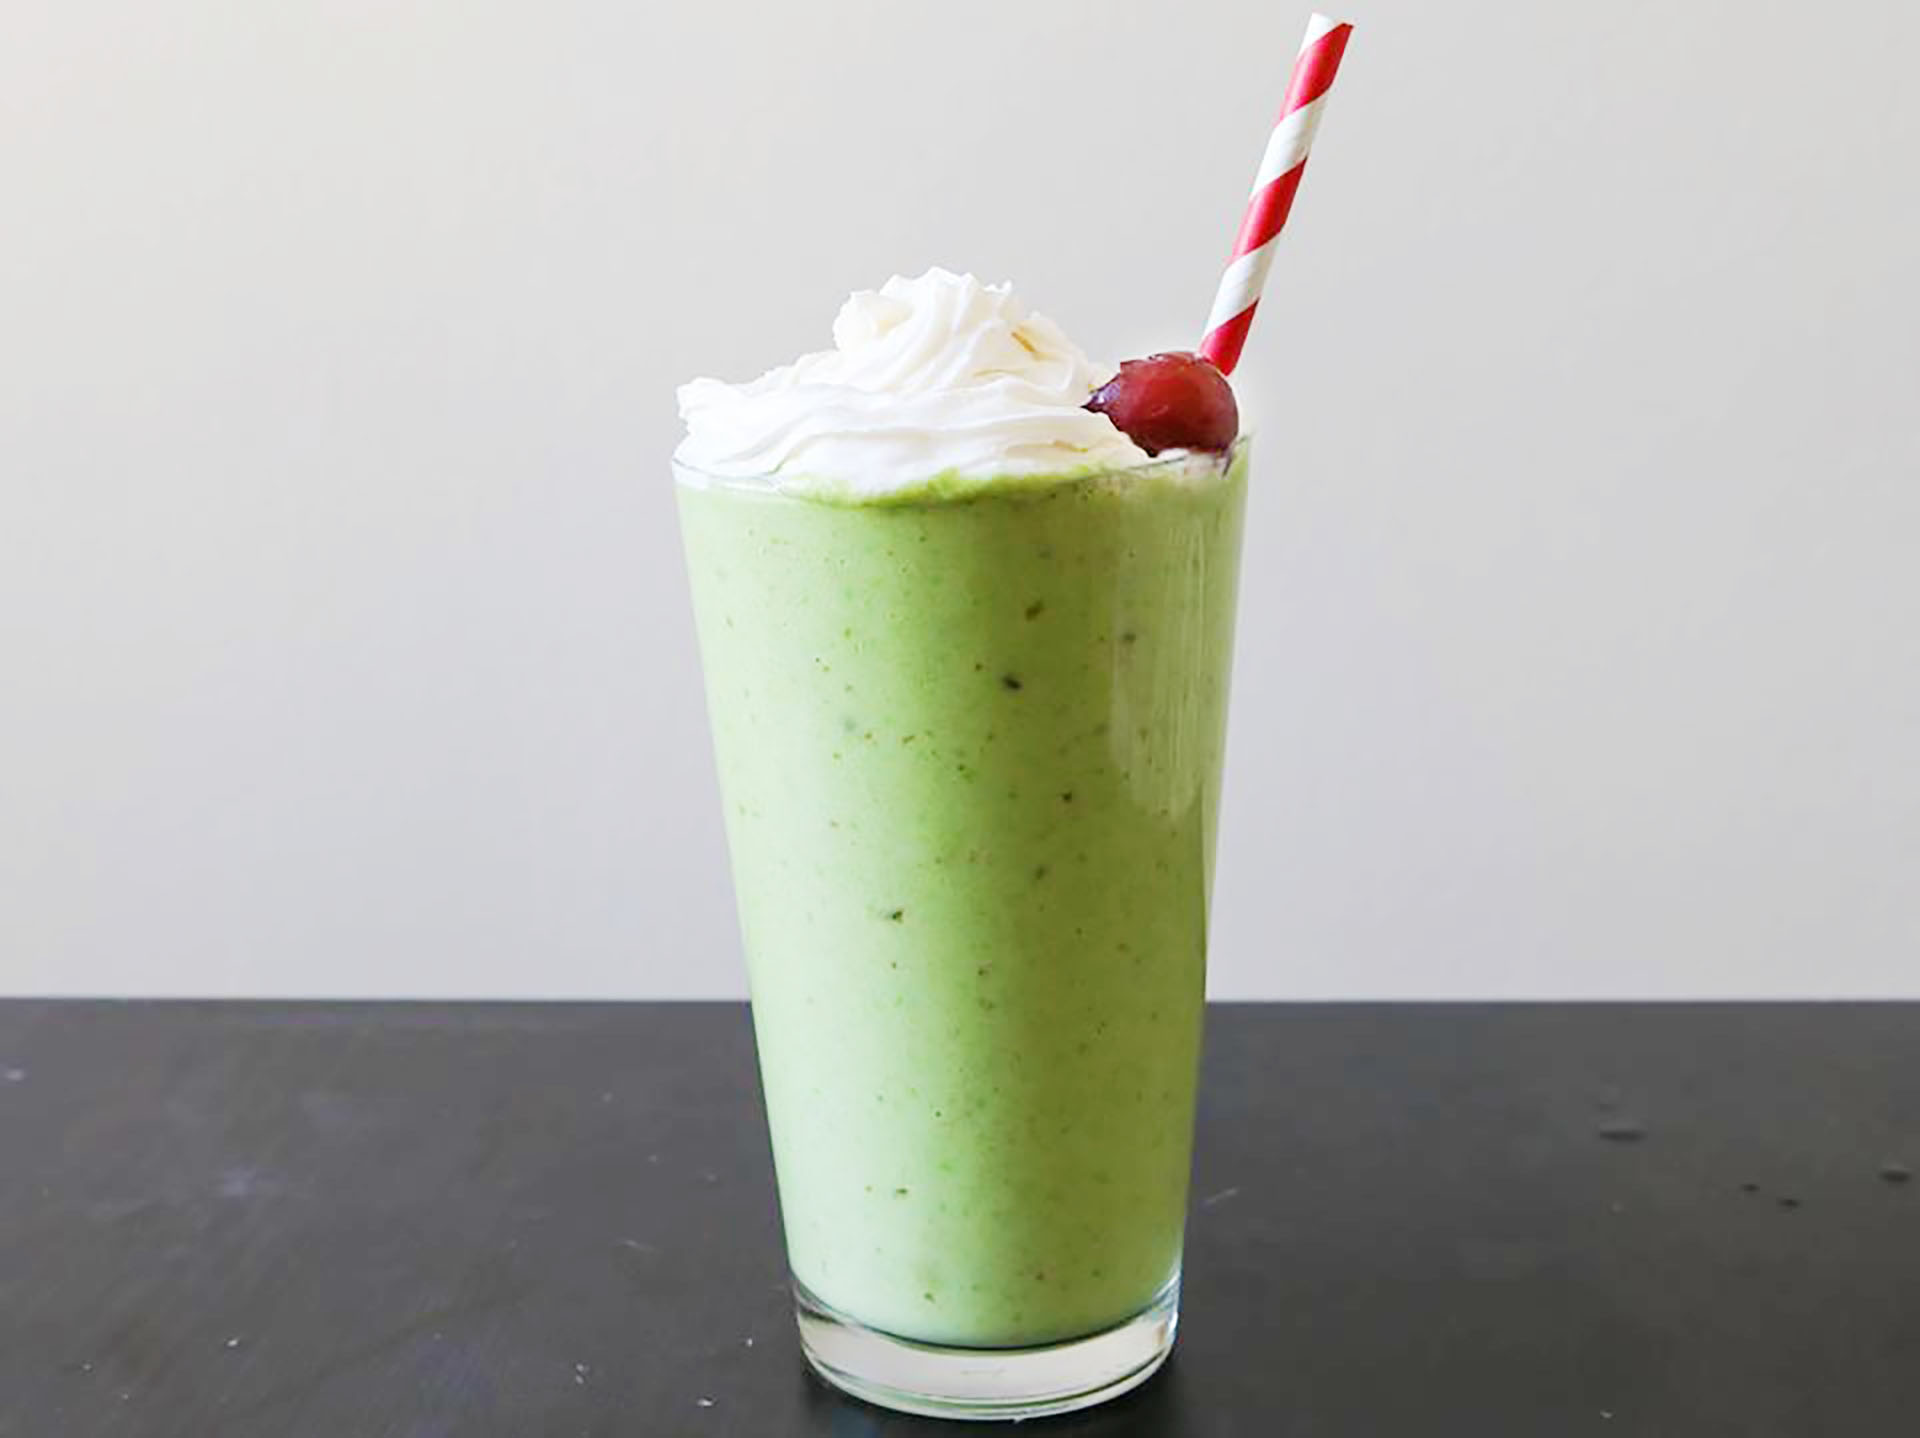 Tall glass of shamrock shake with whipped topping and a cherry